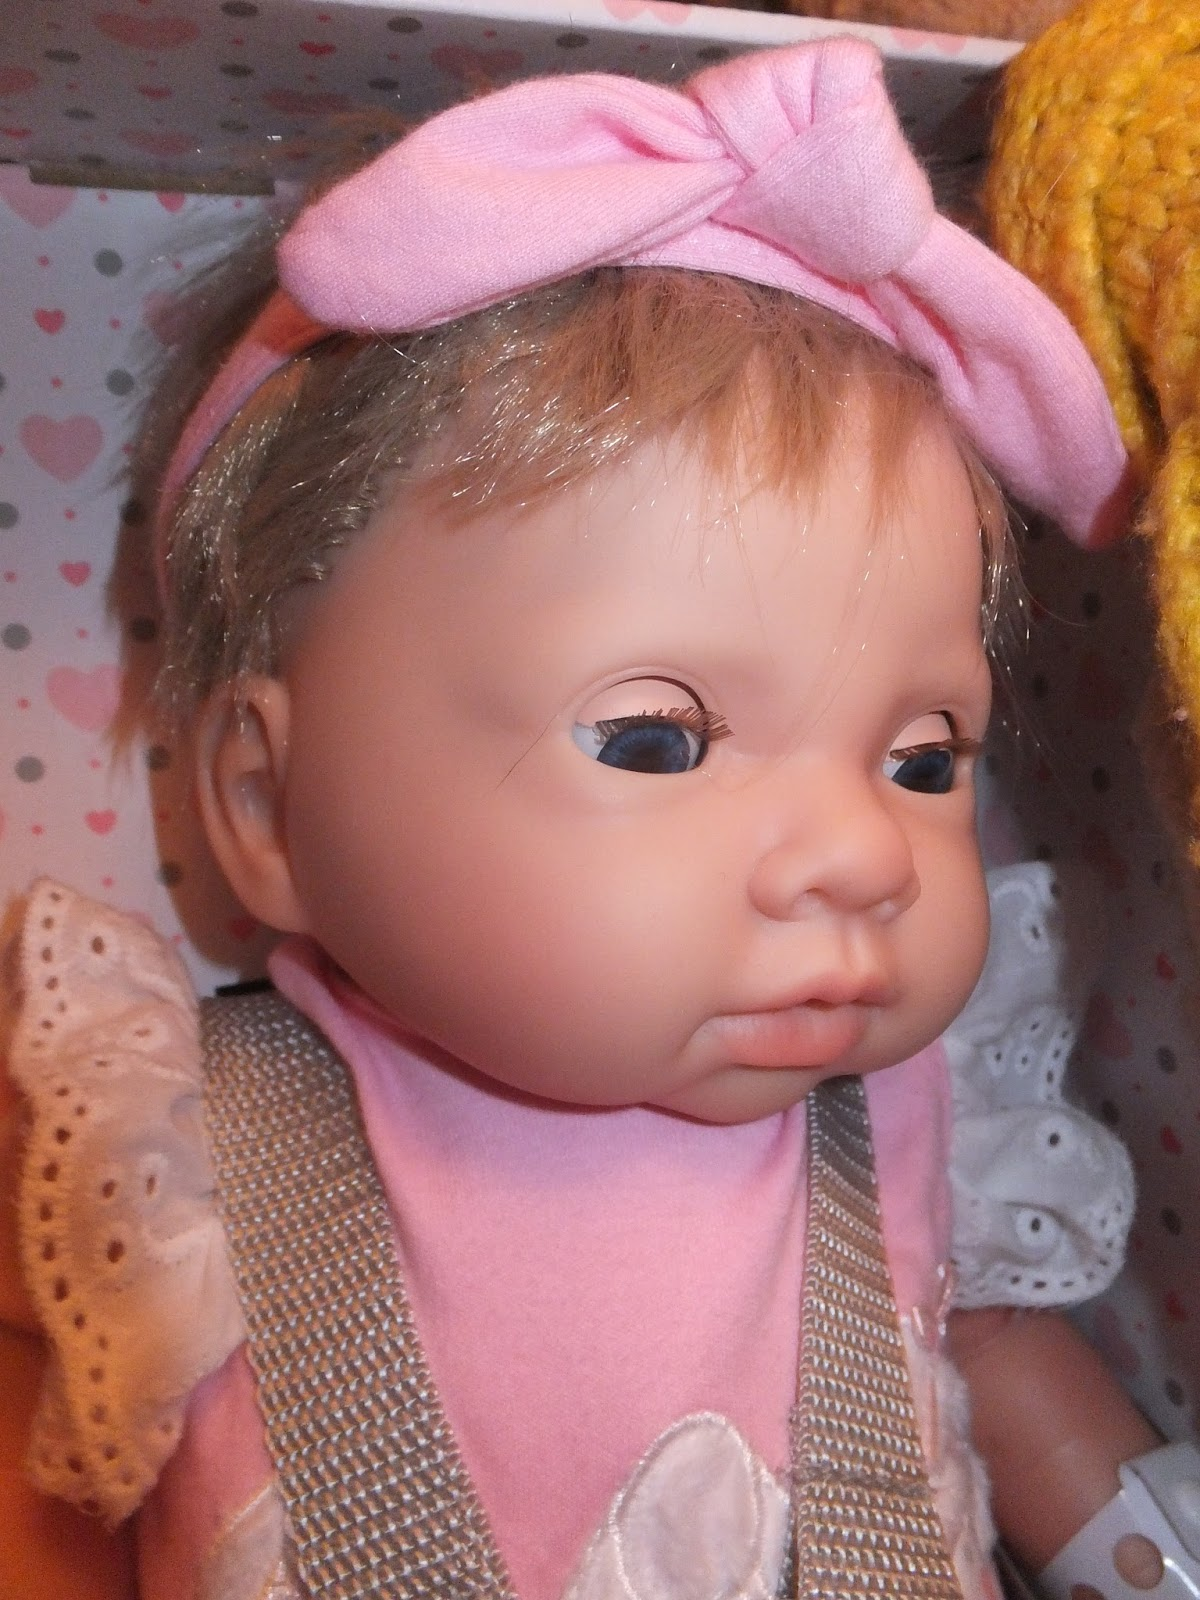 Review Chad Valley Tiny Treasures Newborn Doll I Love Unicorns With Soft Warm Skin Slightly Crazy Wild But Hair Eyes That Open And Close Very Lifelike Facial Features She Really Does Look Like A Real